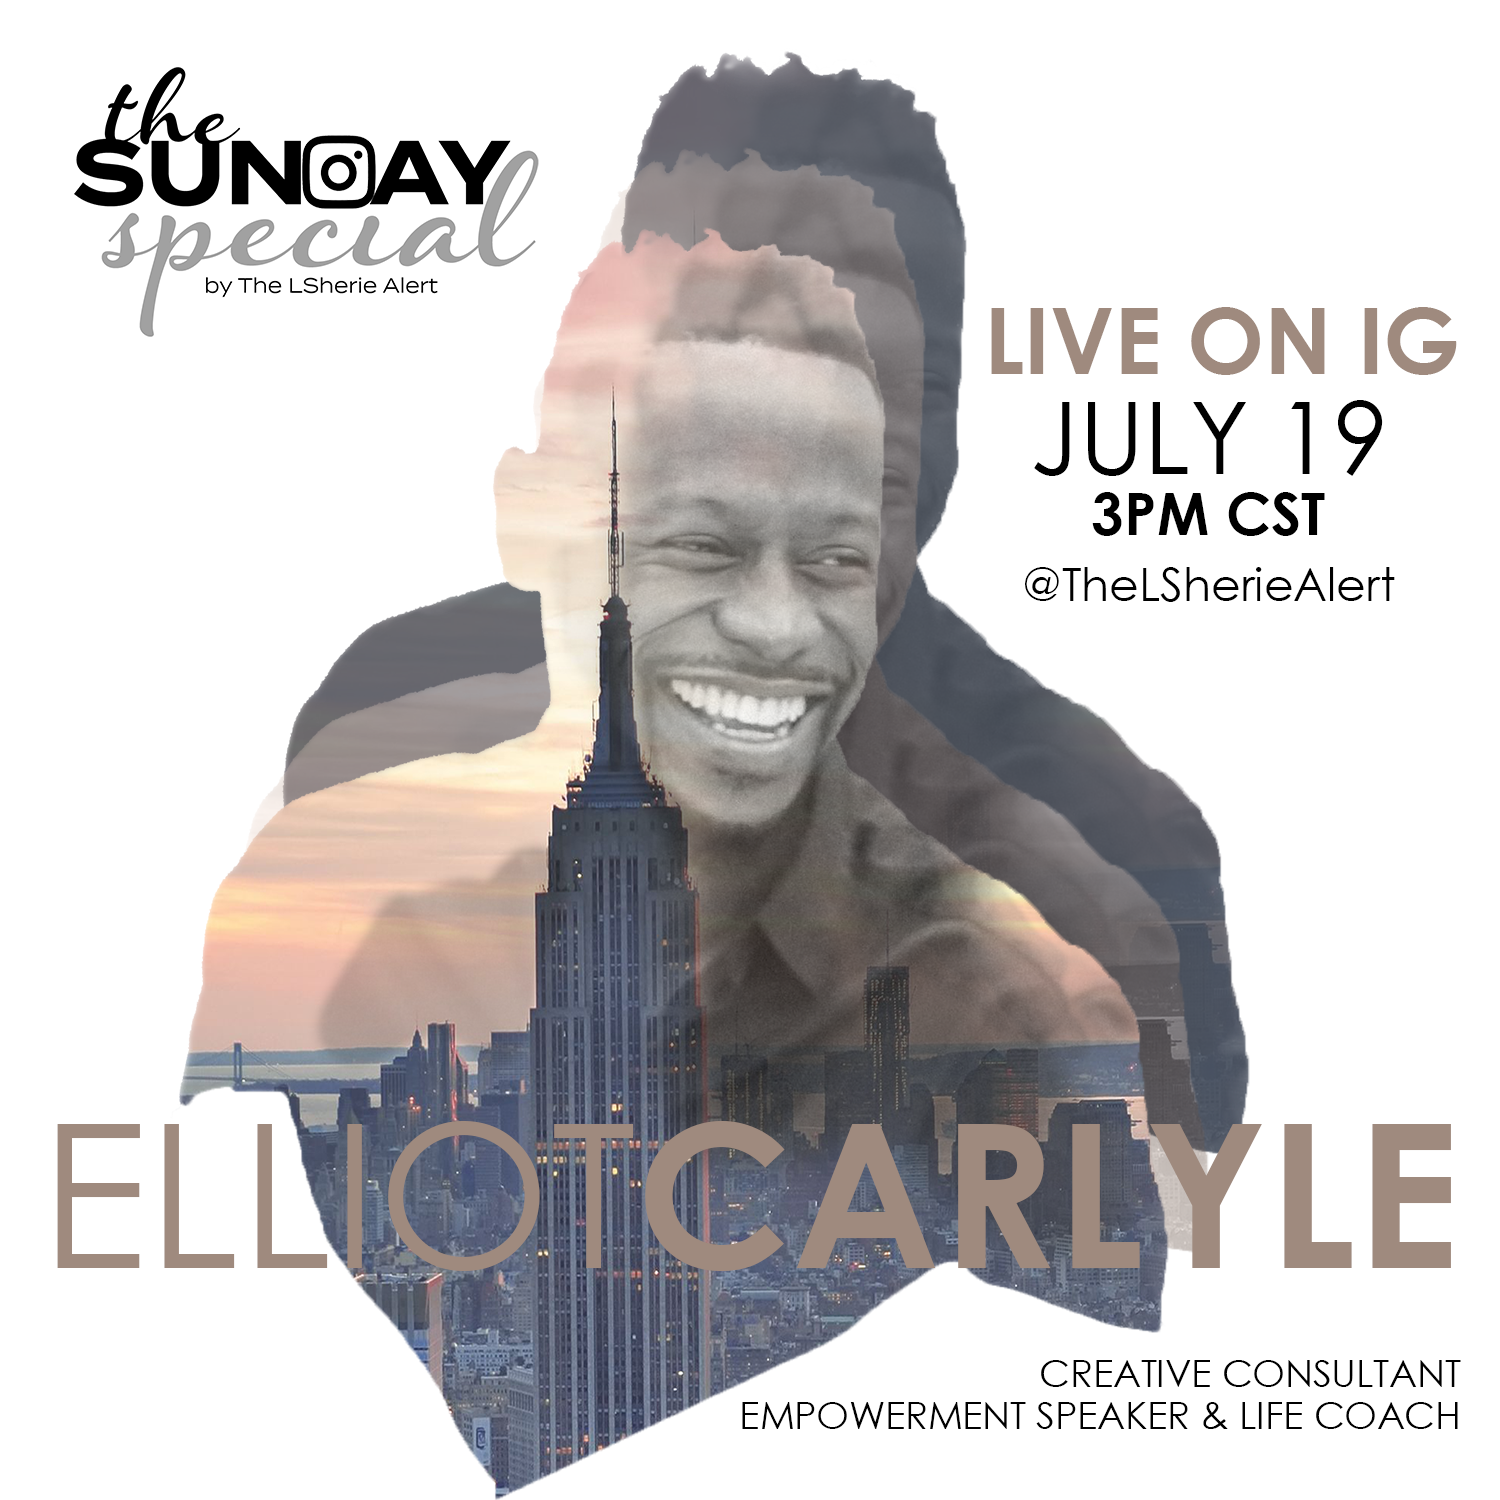 Promotion for Elliot Carlyle's appearance on The Sunday Special on July 19, 2020